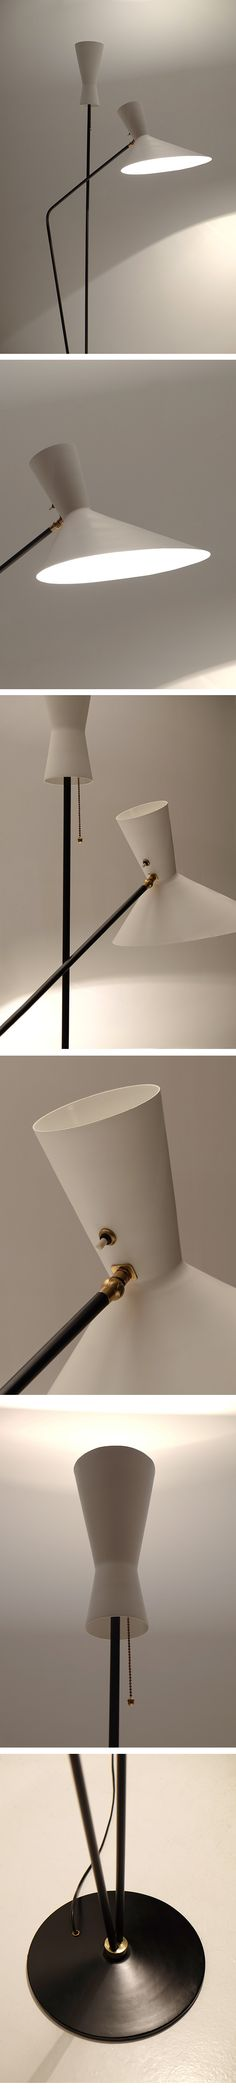 Professor D. Moor, Floor Lamp, Switzerland,